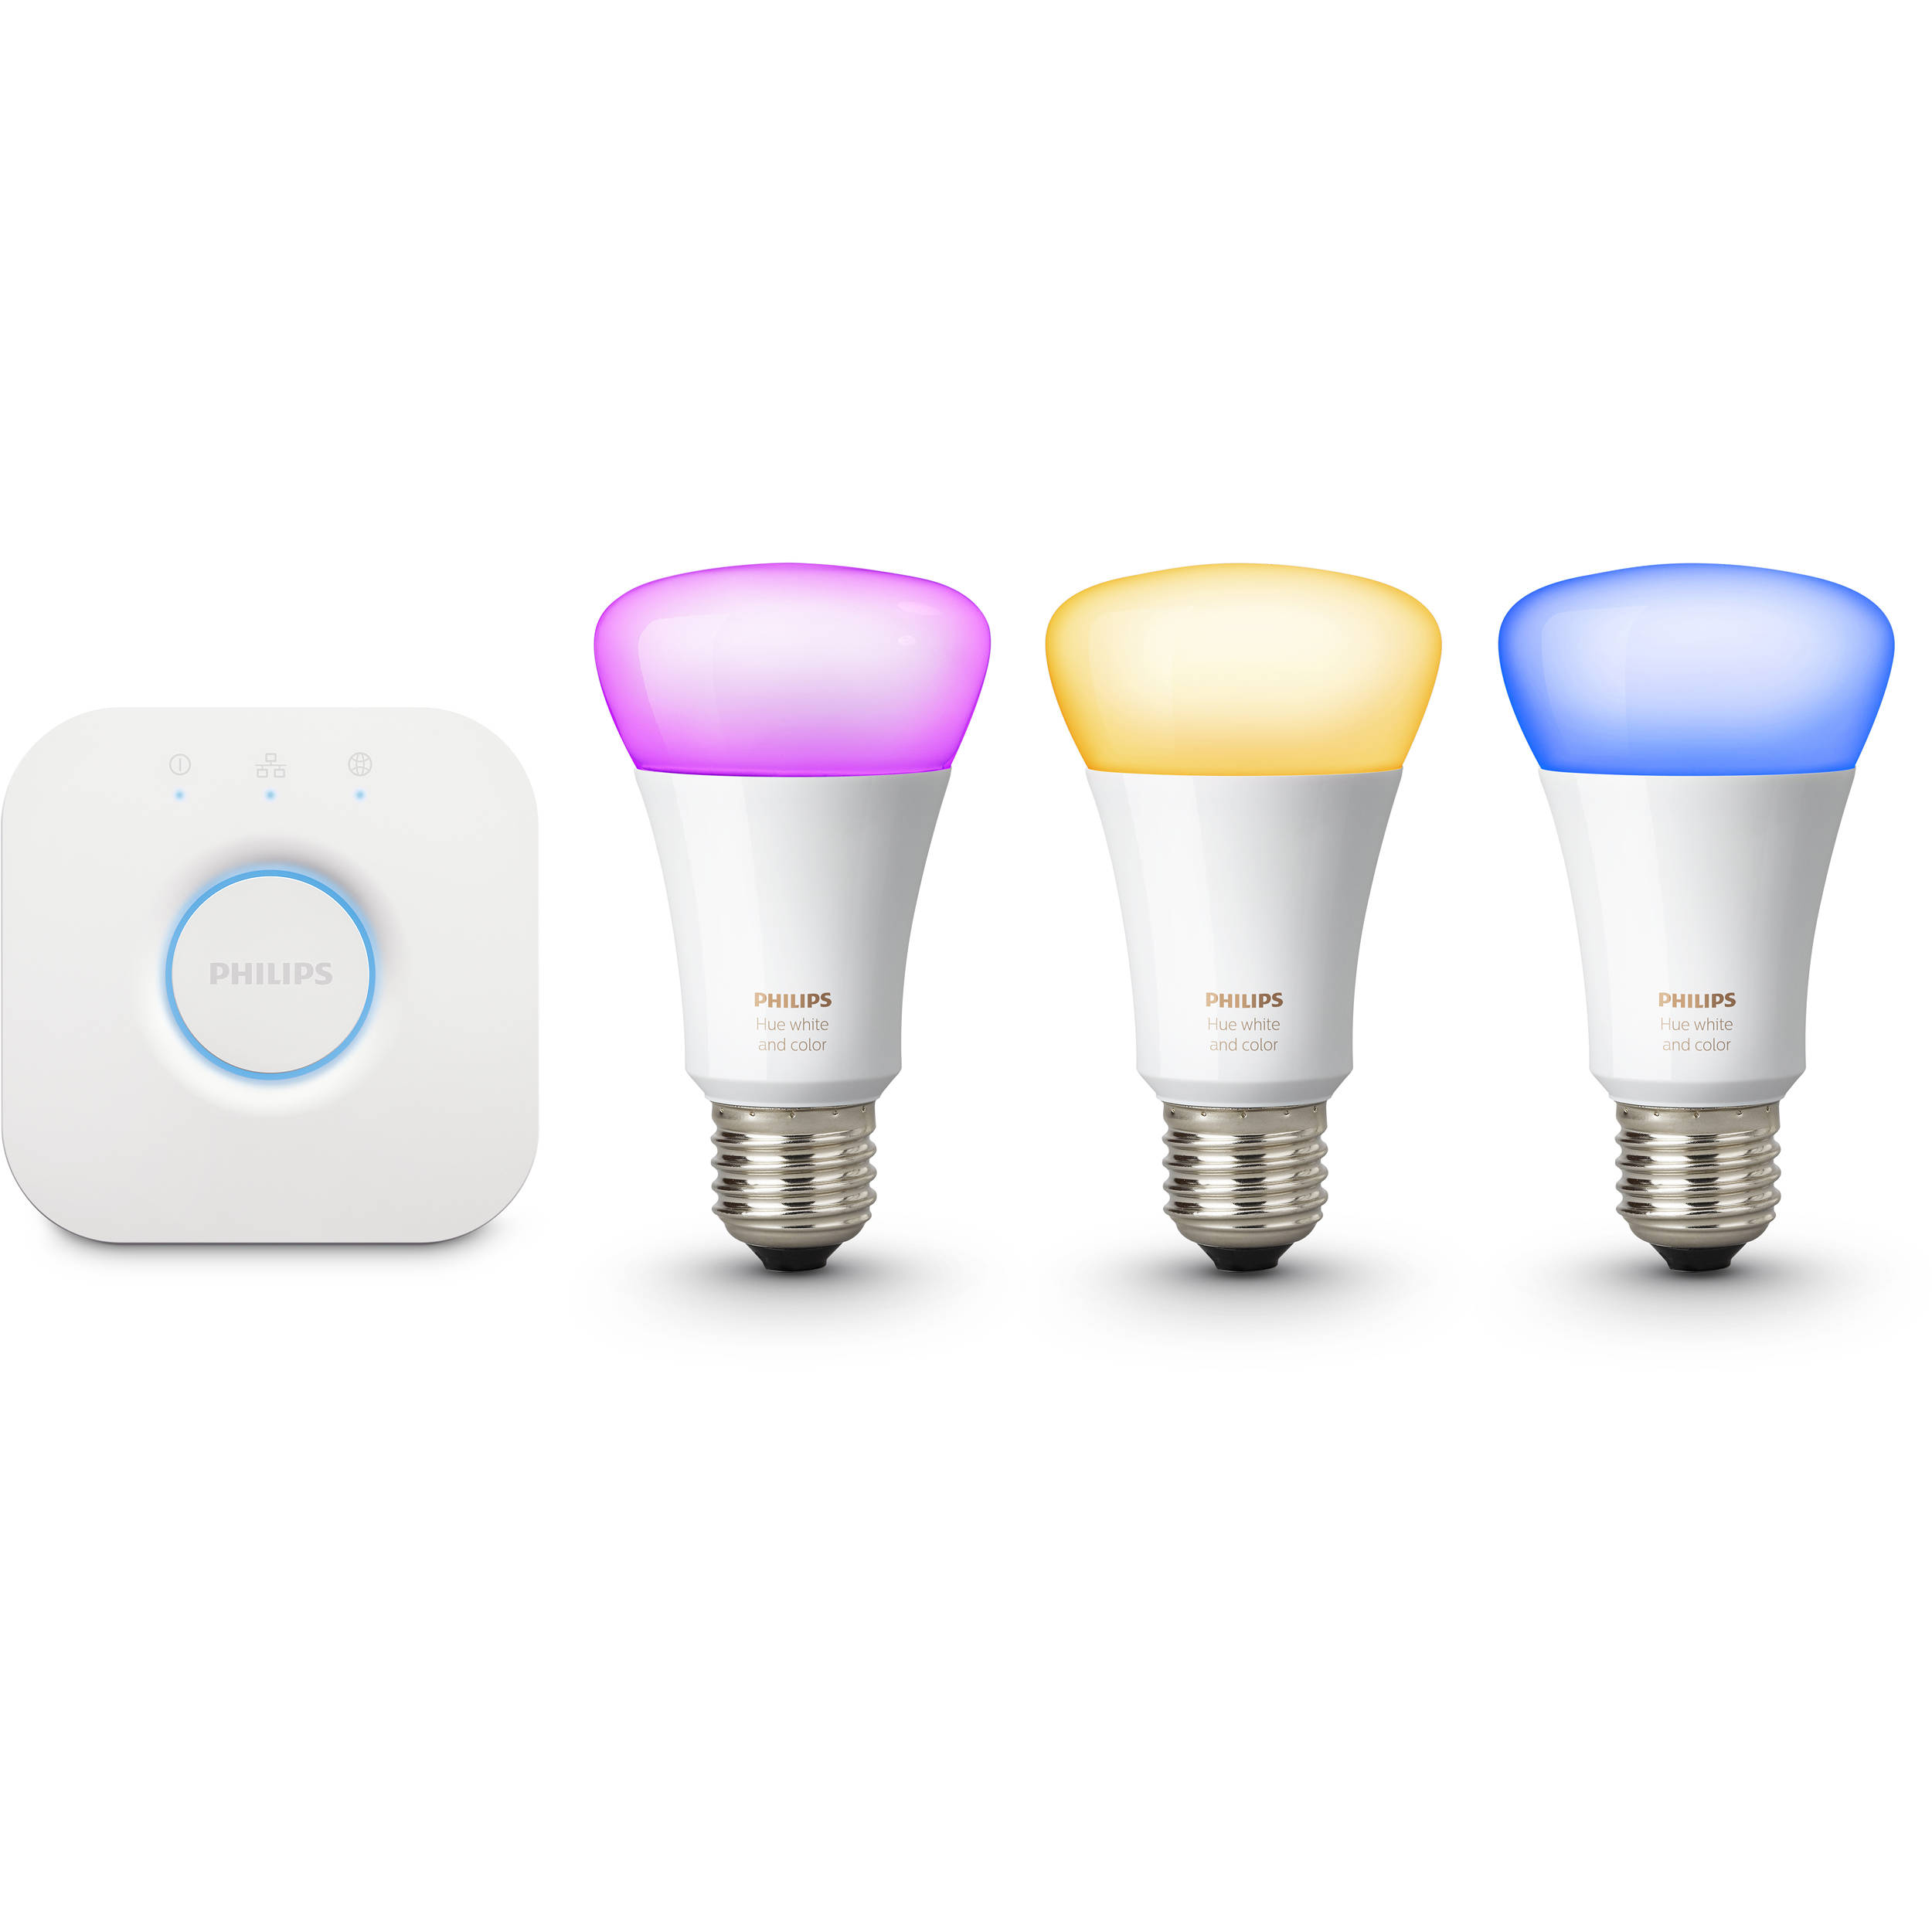 philips_464479_hue_white_color_ambiance_1302346.jpg